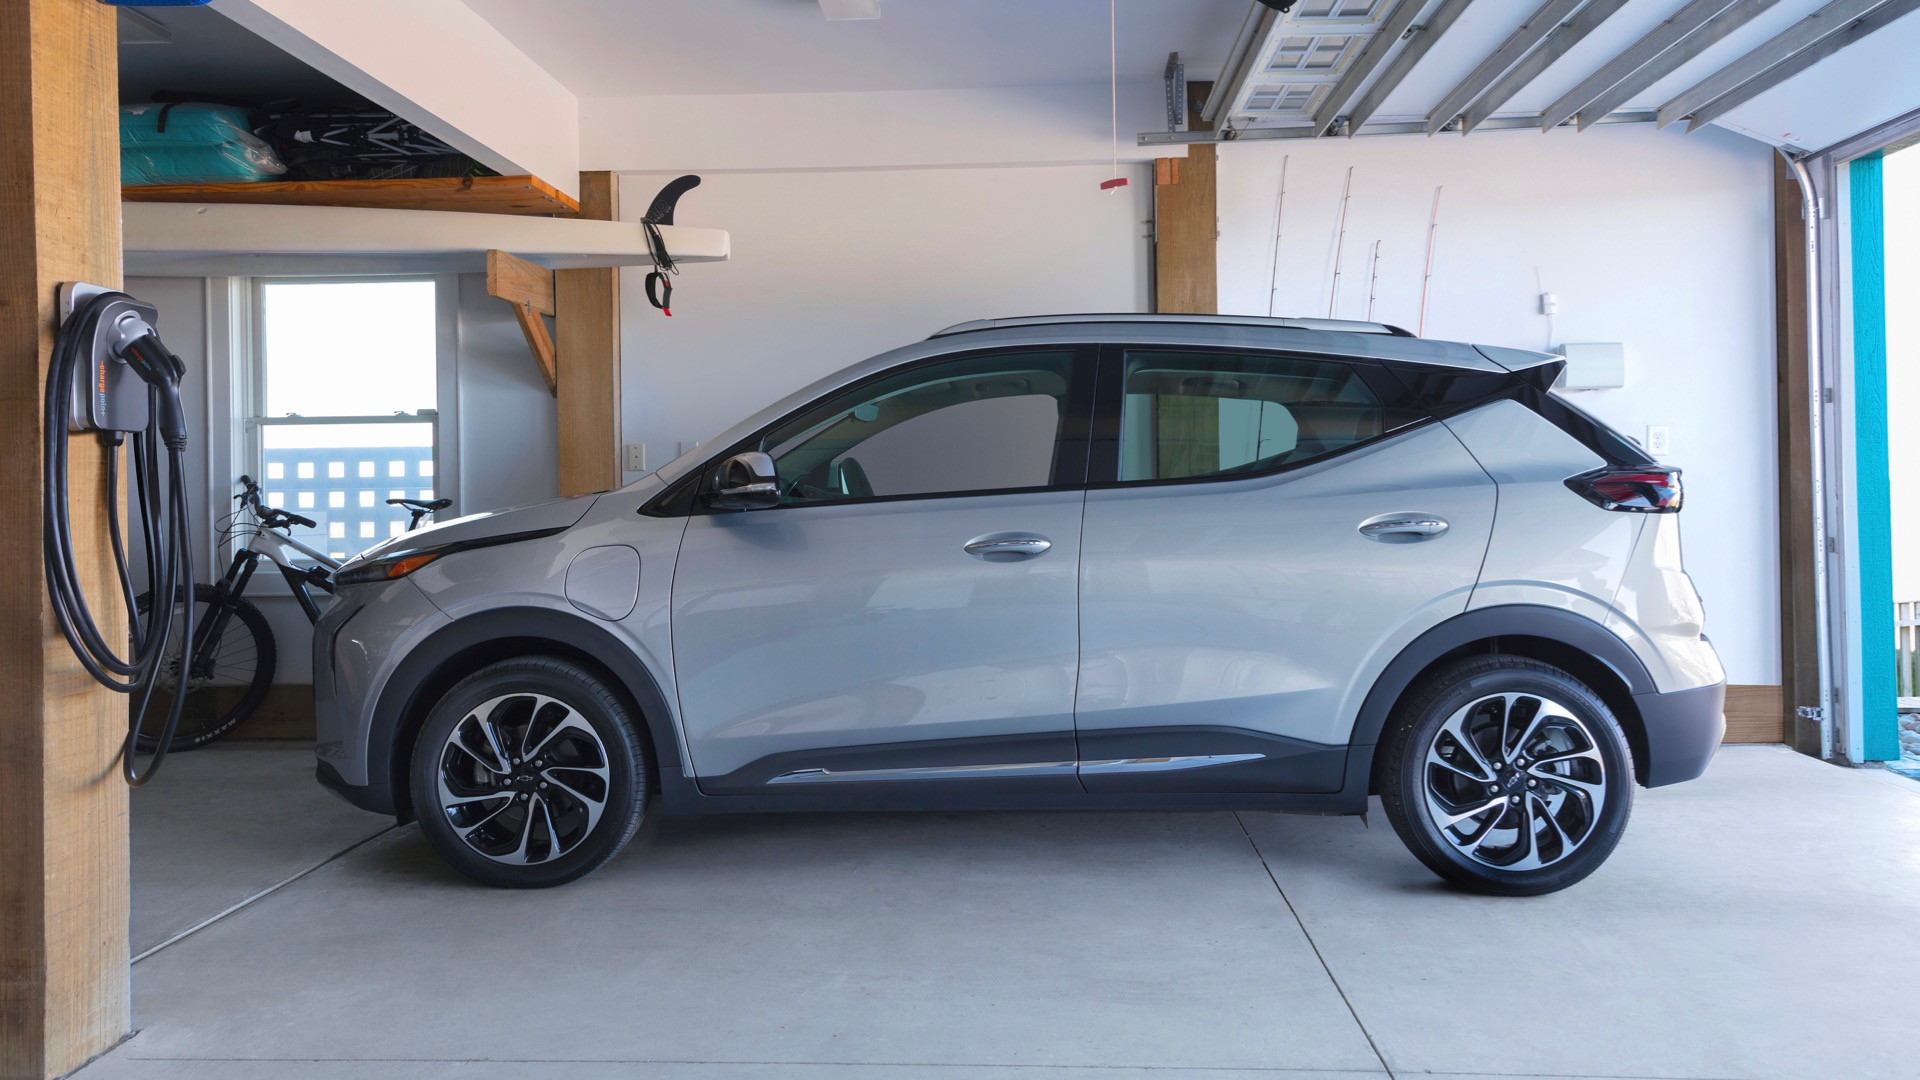 Renewable energy plan incentivizes GM EV owners: Free home charging after midnight